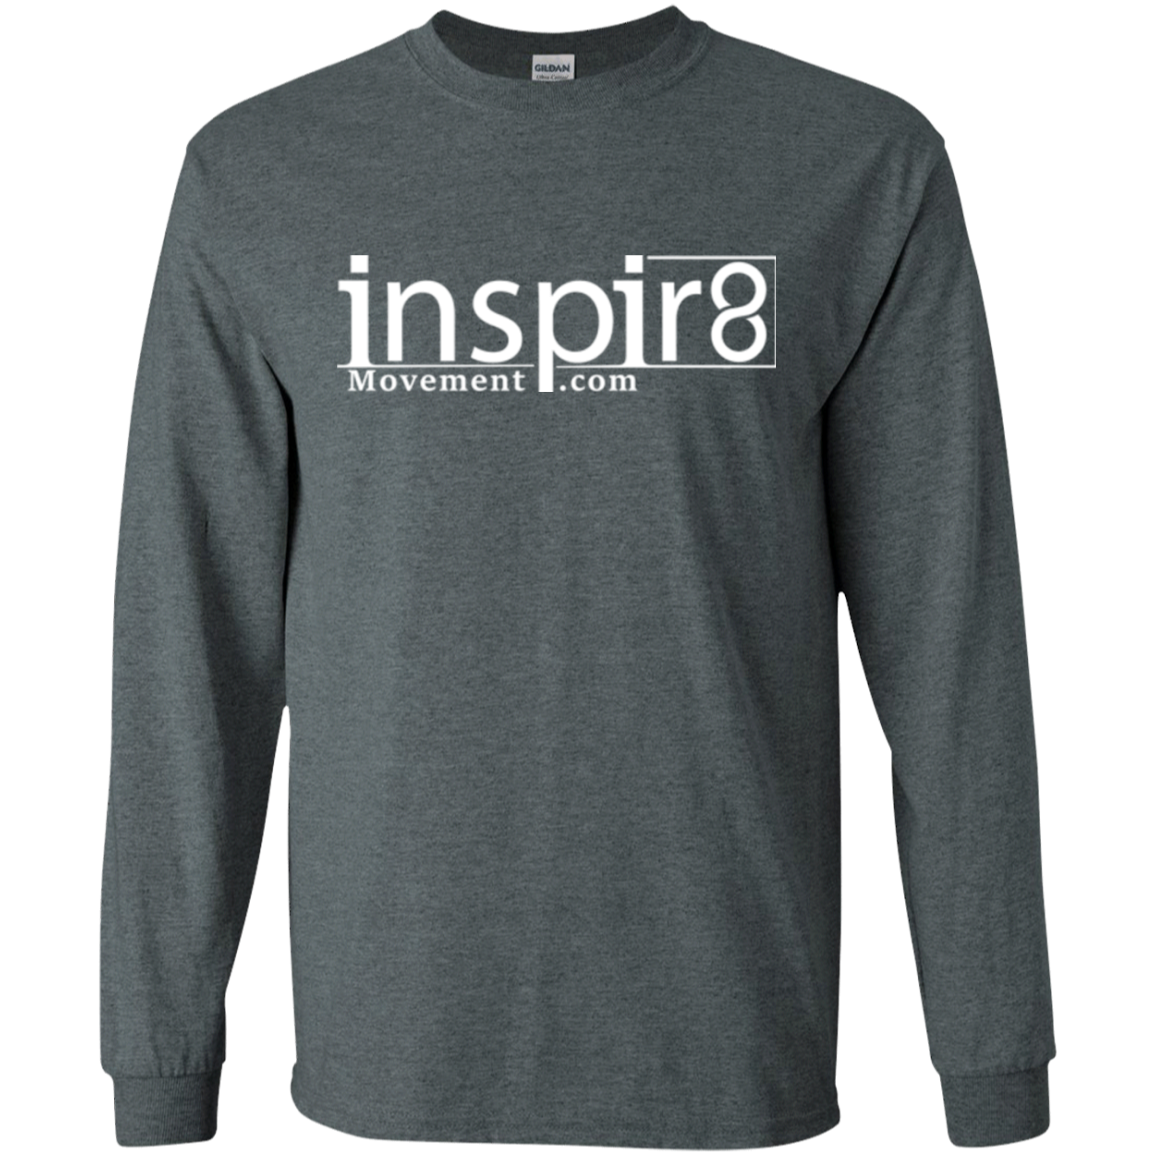 Official Men's Long Sleeve inspir8movement.com Shirt for inspirational and motivational clothing